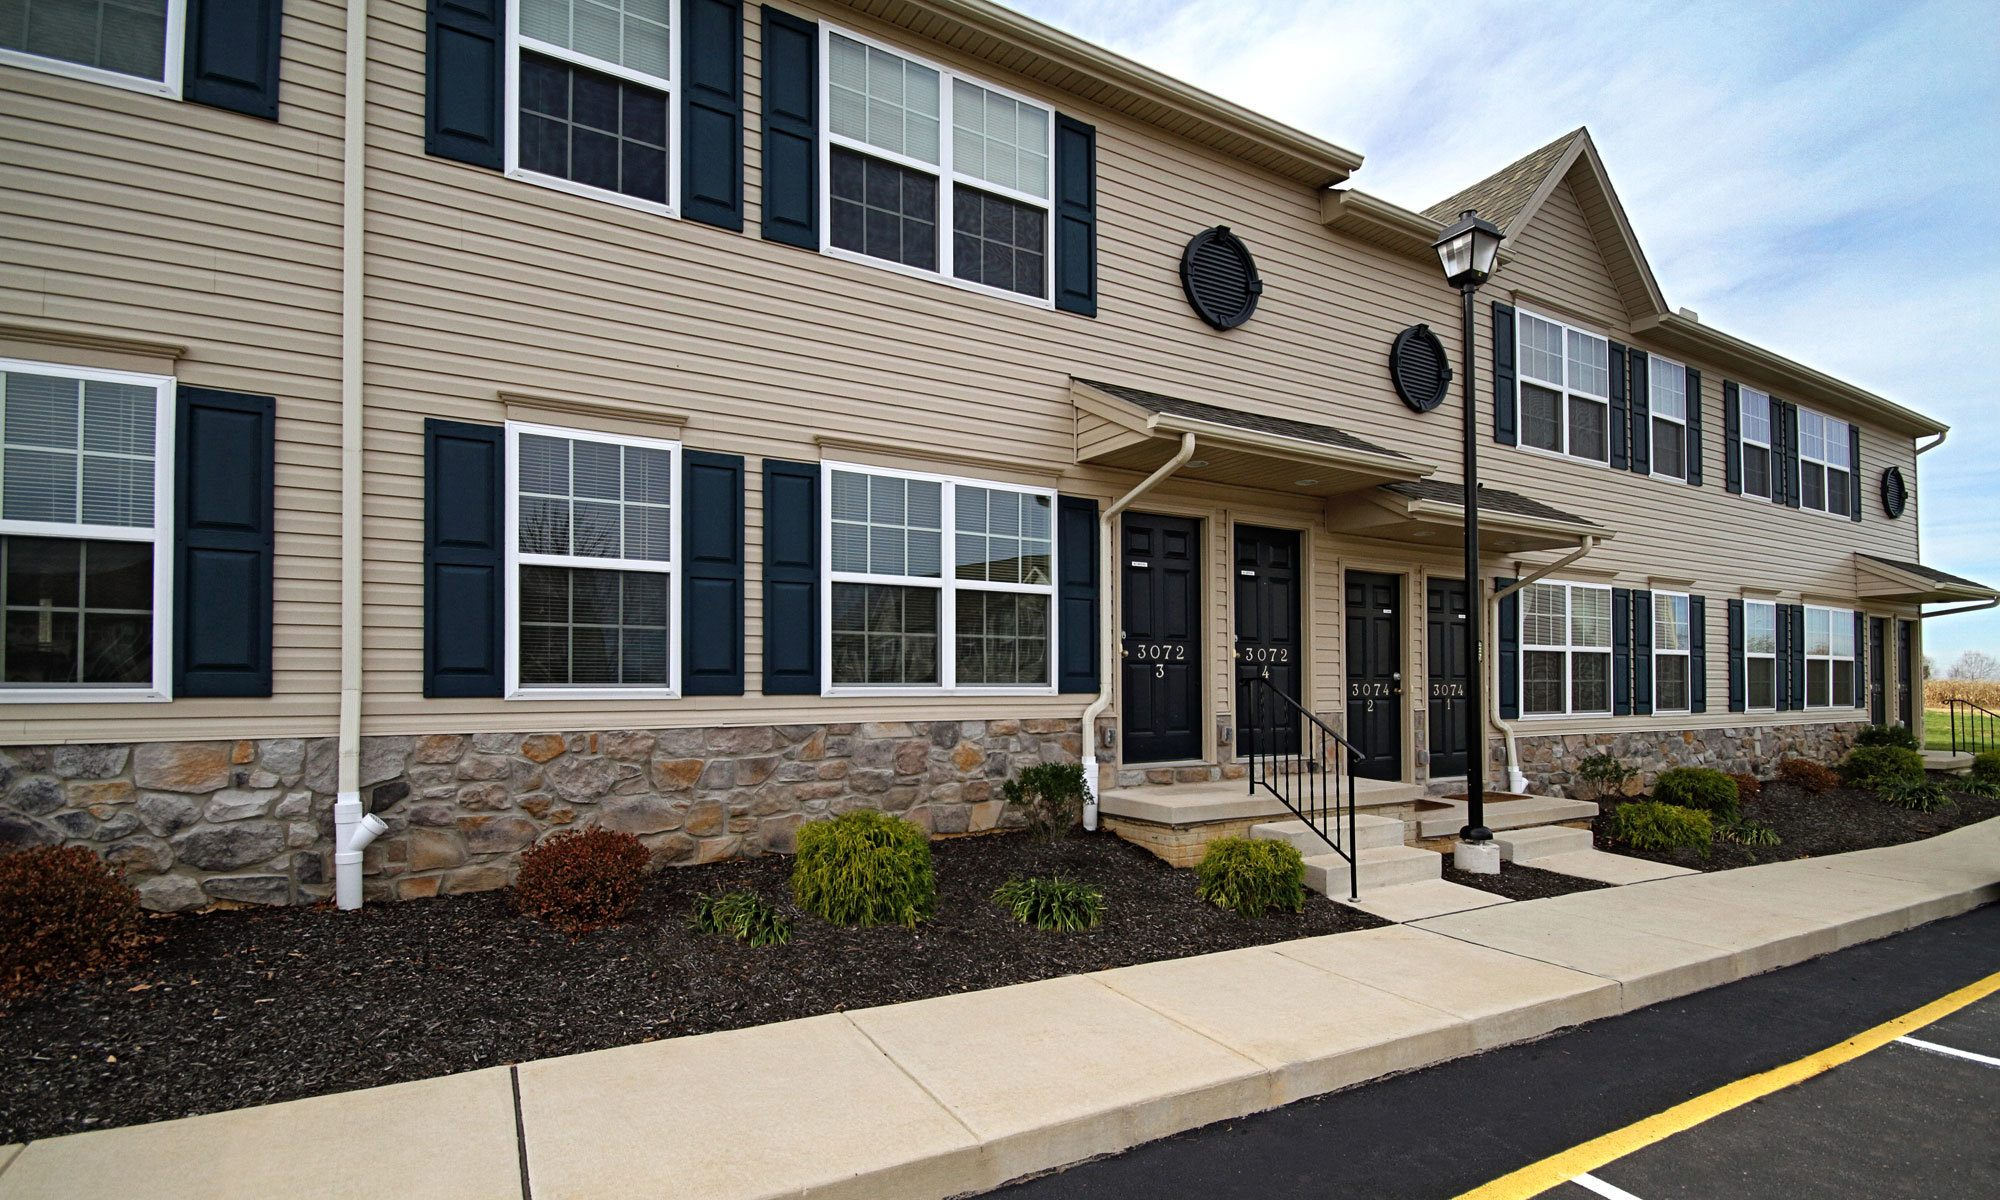 West York PA Apartments for Rent The View at Mackenzi